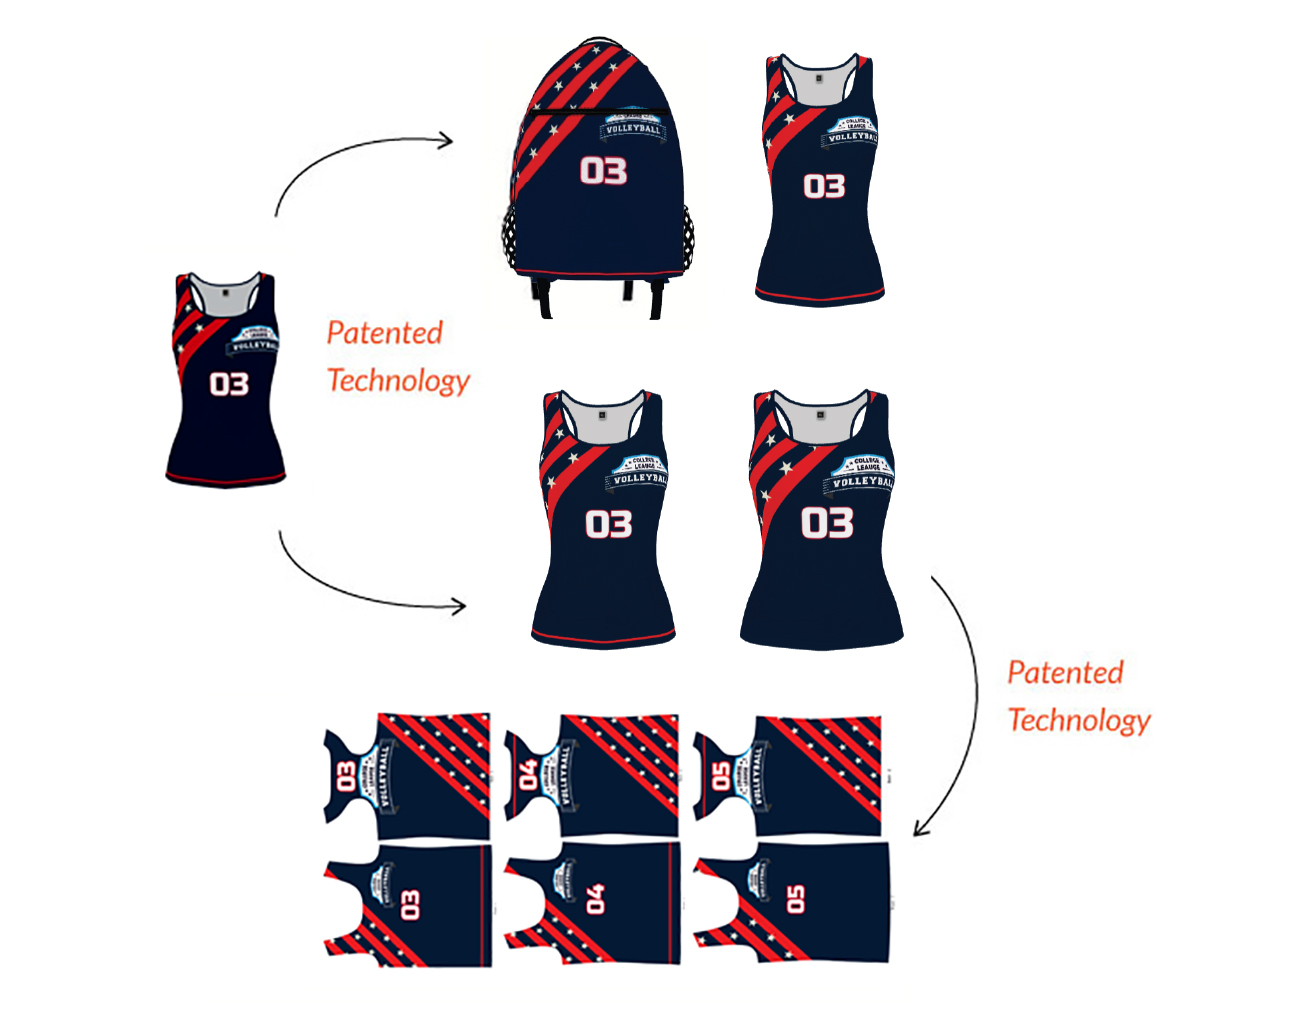 software for automated print pattern generation, size grading software, print-on-demand automation software for sports uniforms, custom apparel and personalized clothing